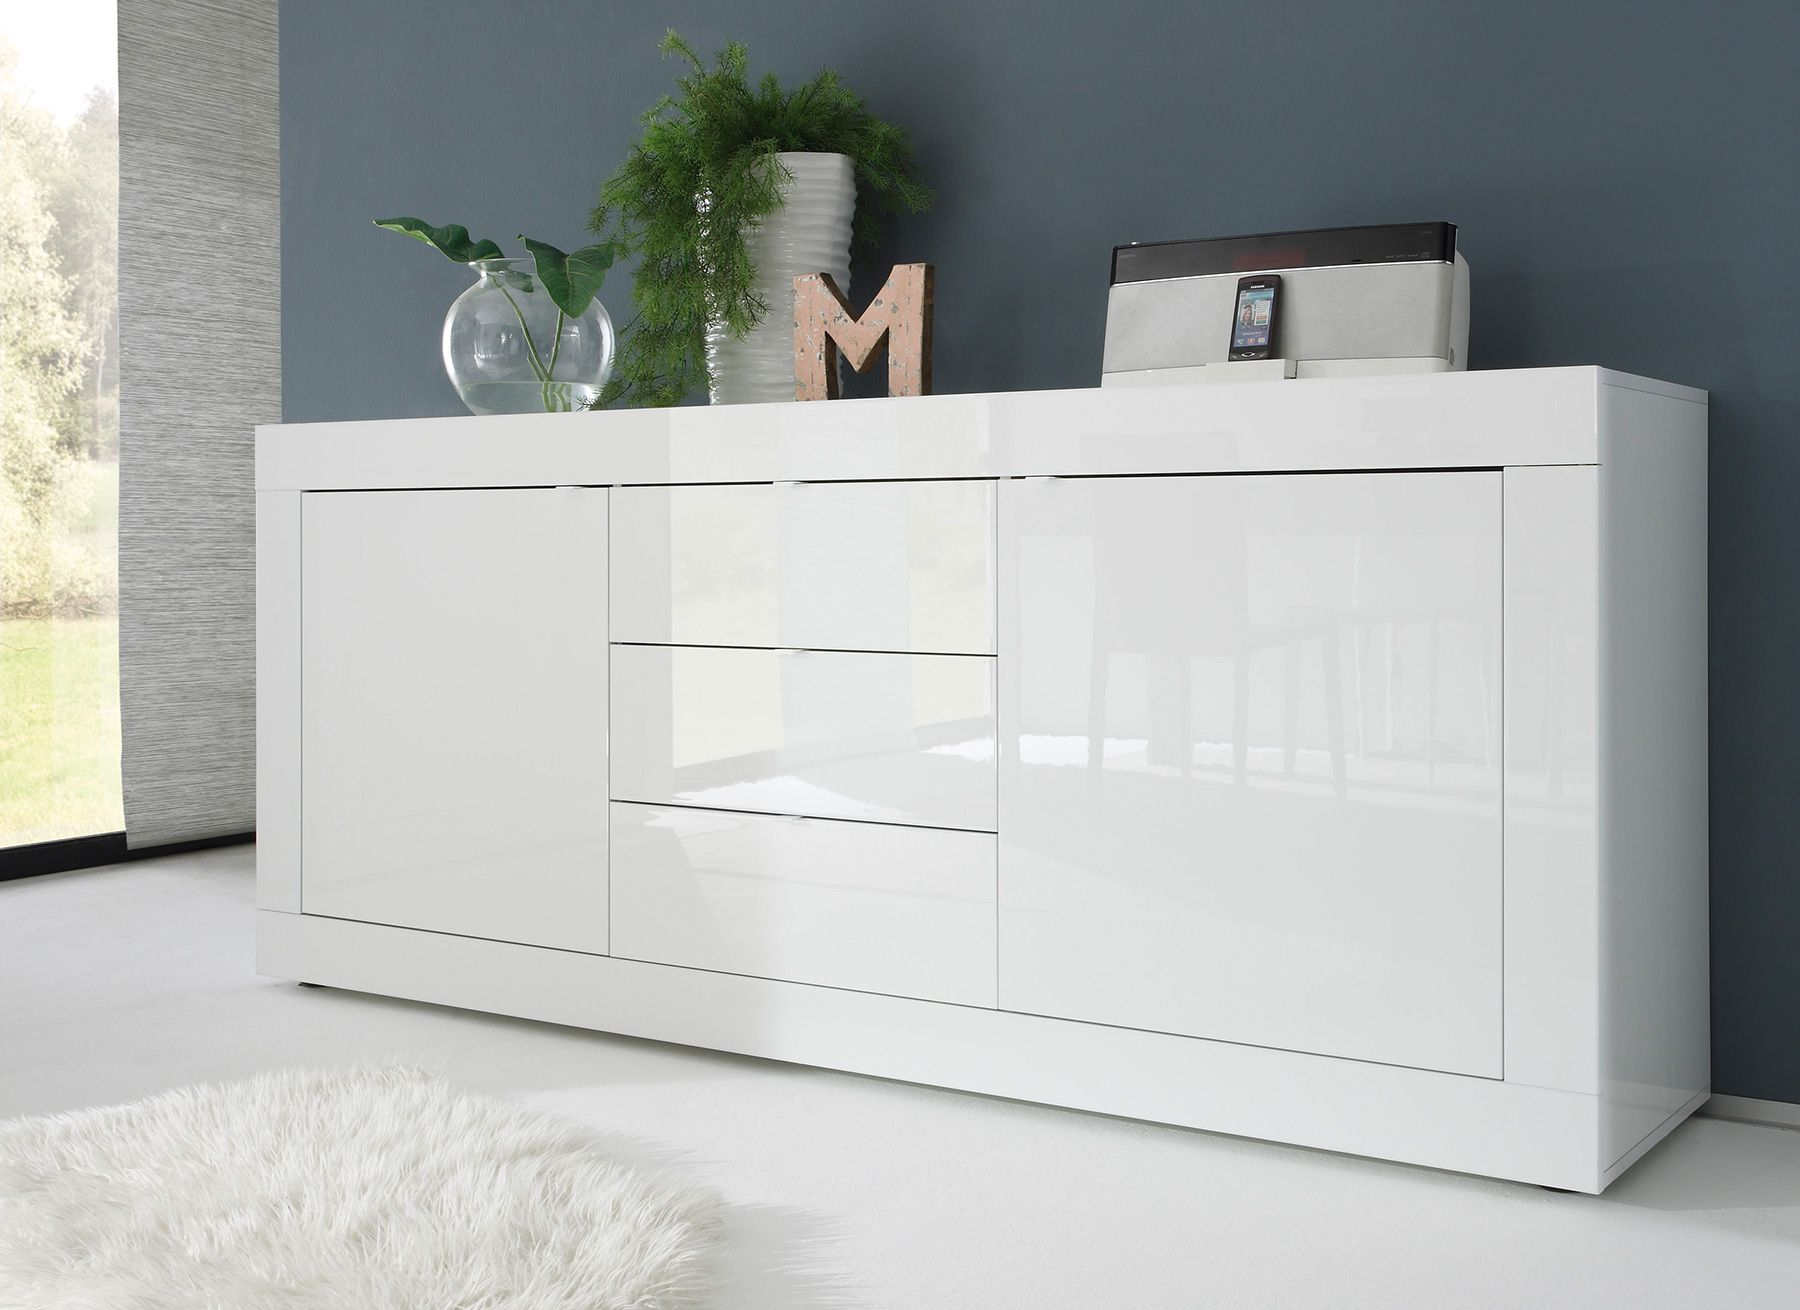 Tolle Sideboard Weiss Hochglanz Lack Sideboard Weiss Hochglanz Kommode Weiß Hochglanz Wohnzimmer Kommode